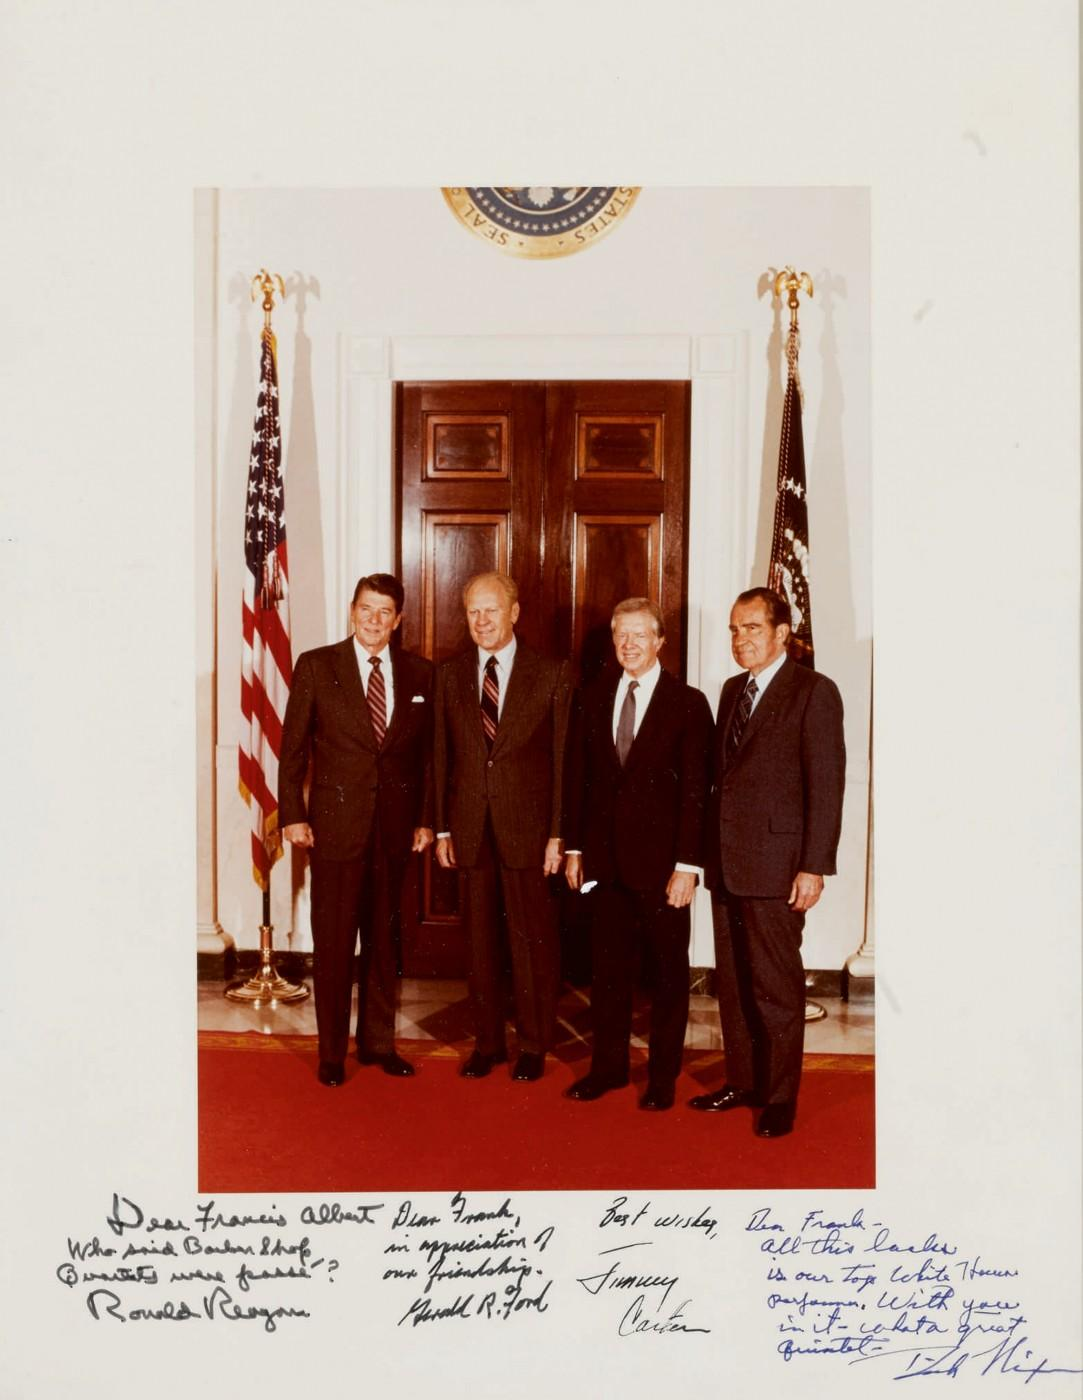 Color Photograph Inscribed to Frank Sinatra by Ronald Reagan, Gerald Ford, Jimmy Carter and Richard Nixon.